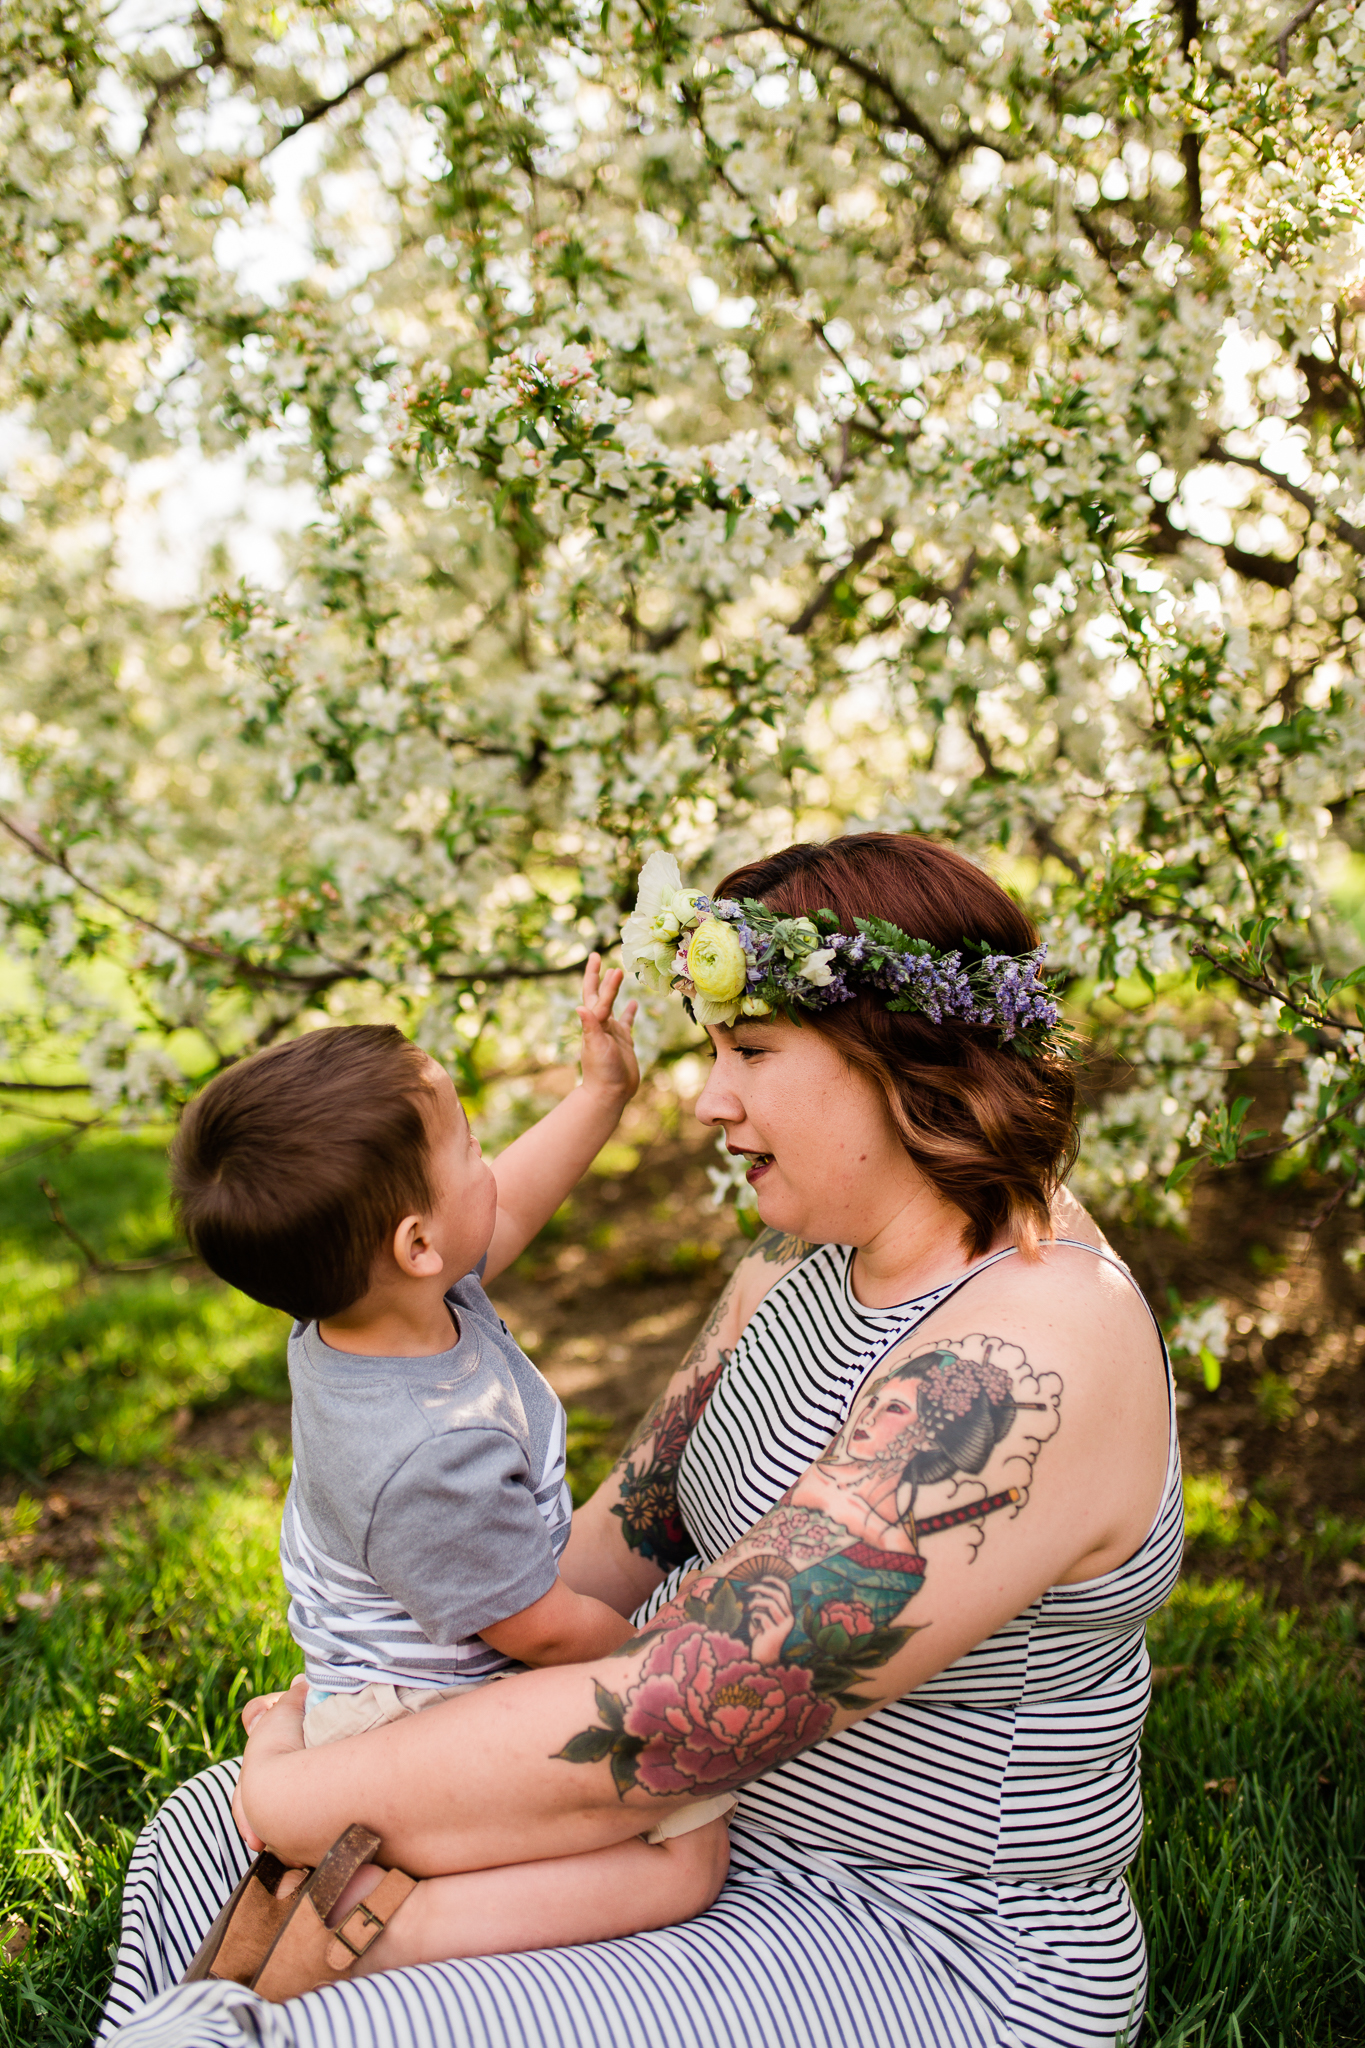 Little boy touches his mother's flower crown, spring mommy and me mini session at Loose Park, Rebecca Clair Photography